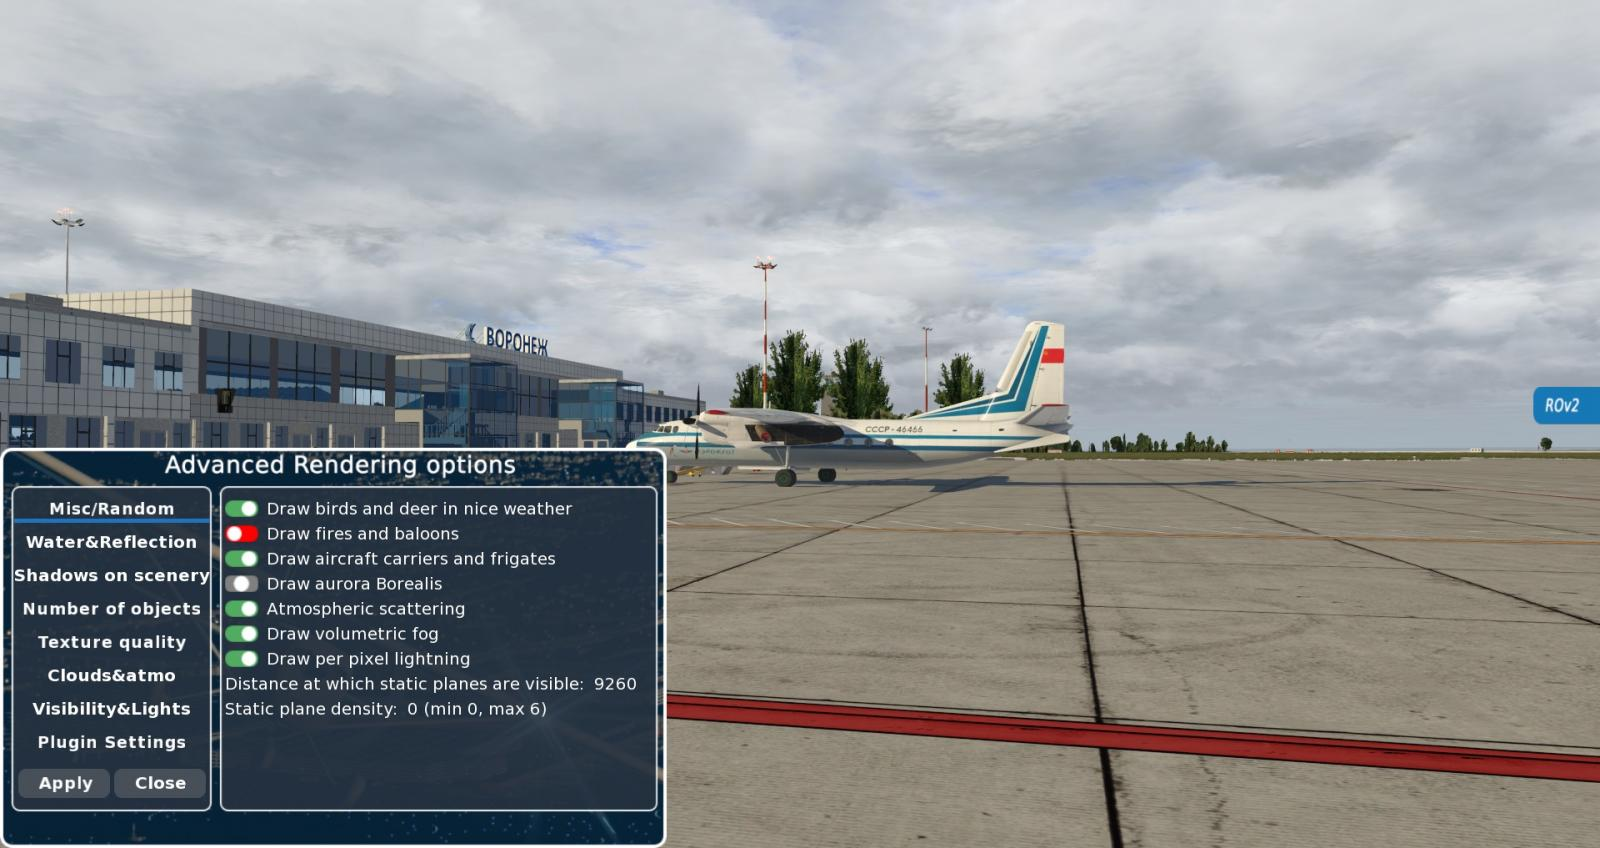 NEW Rendering options v2 plugin for XP11 - XP11 General discussion